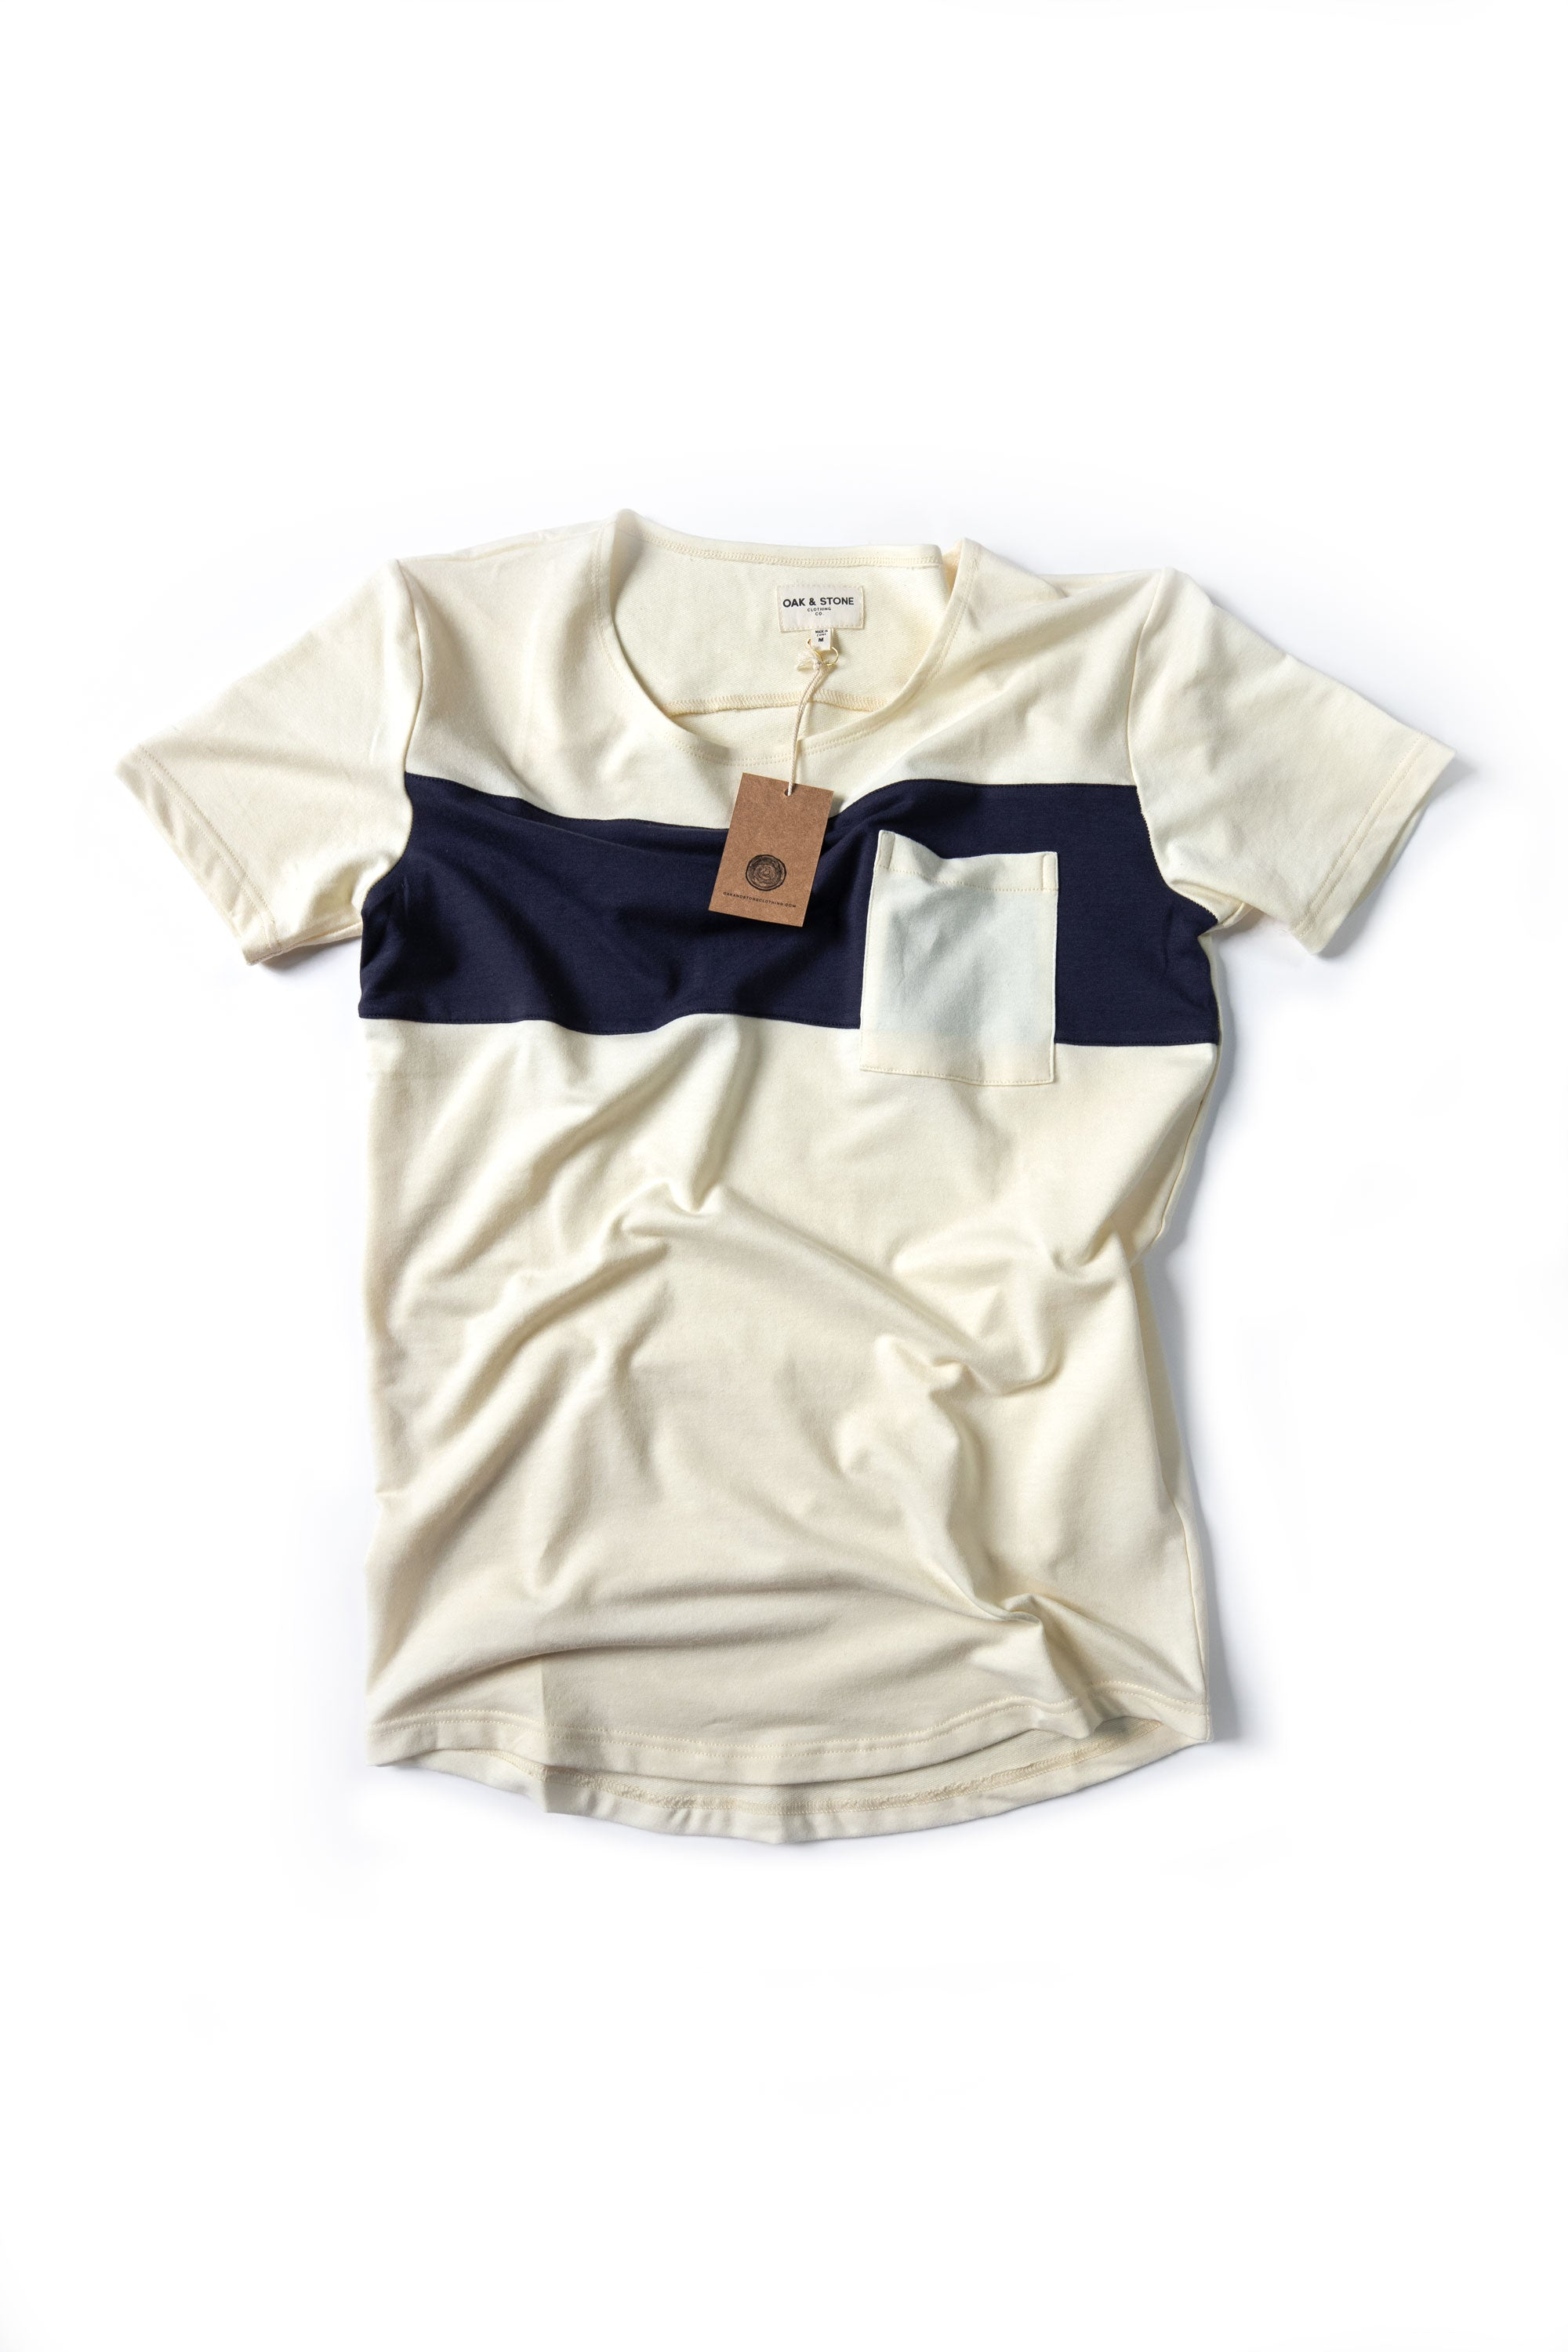 Bar Pocket Tee - Ivory - Oak & Stone Clothing Co.